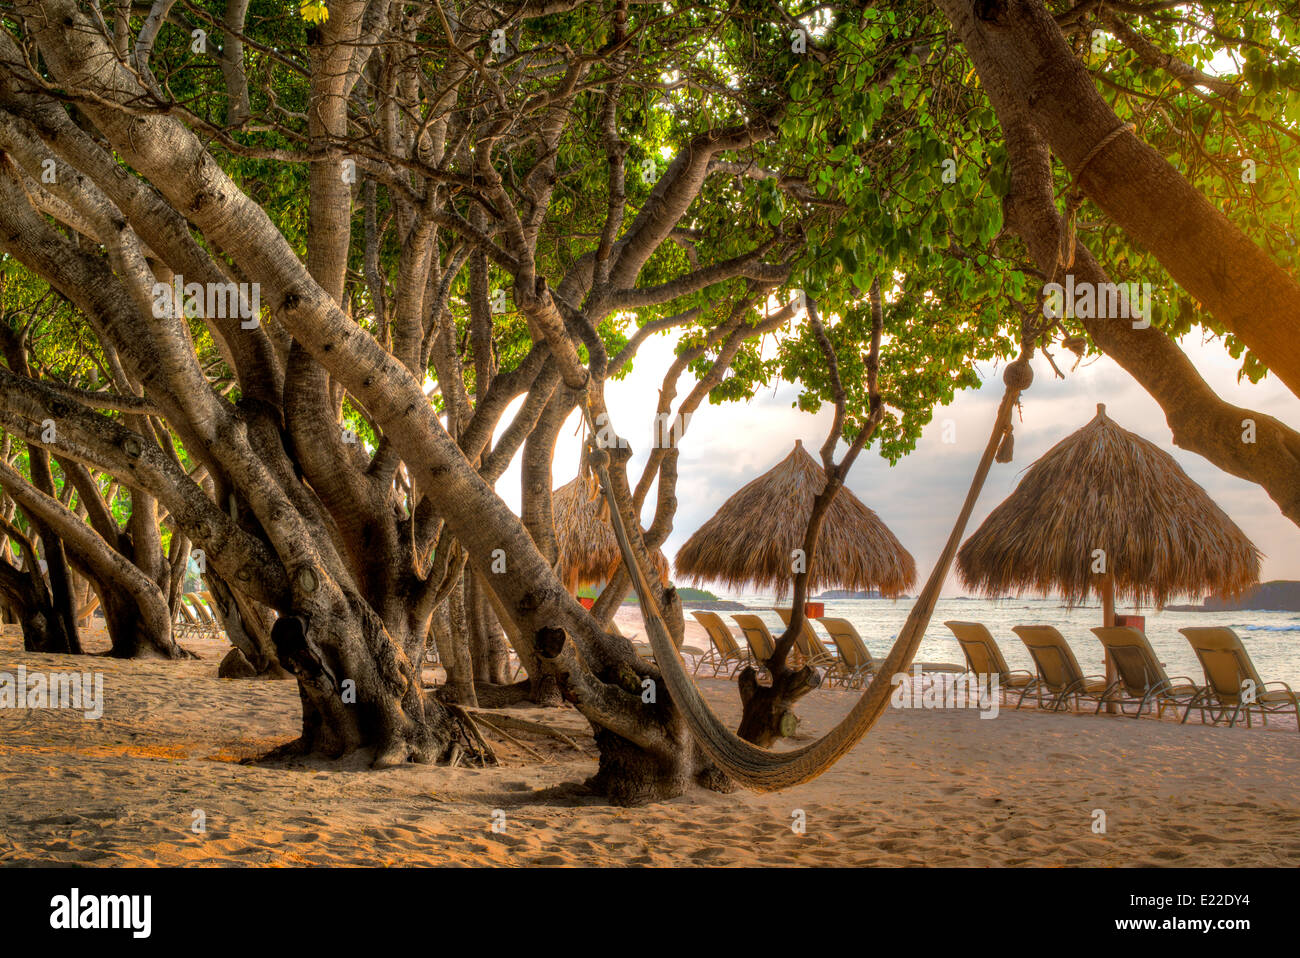 Beach and chairs at Four Seasons. Punta Mita, Mexico. - Stock Image